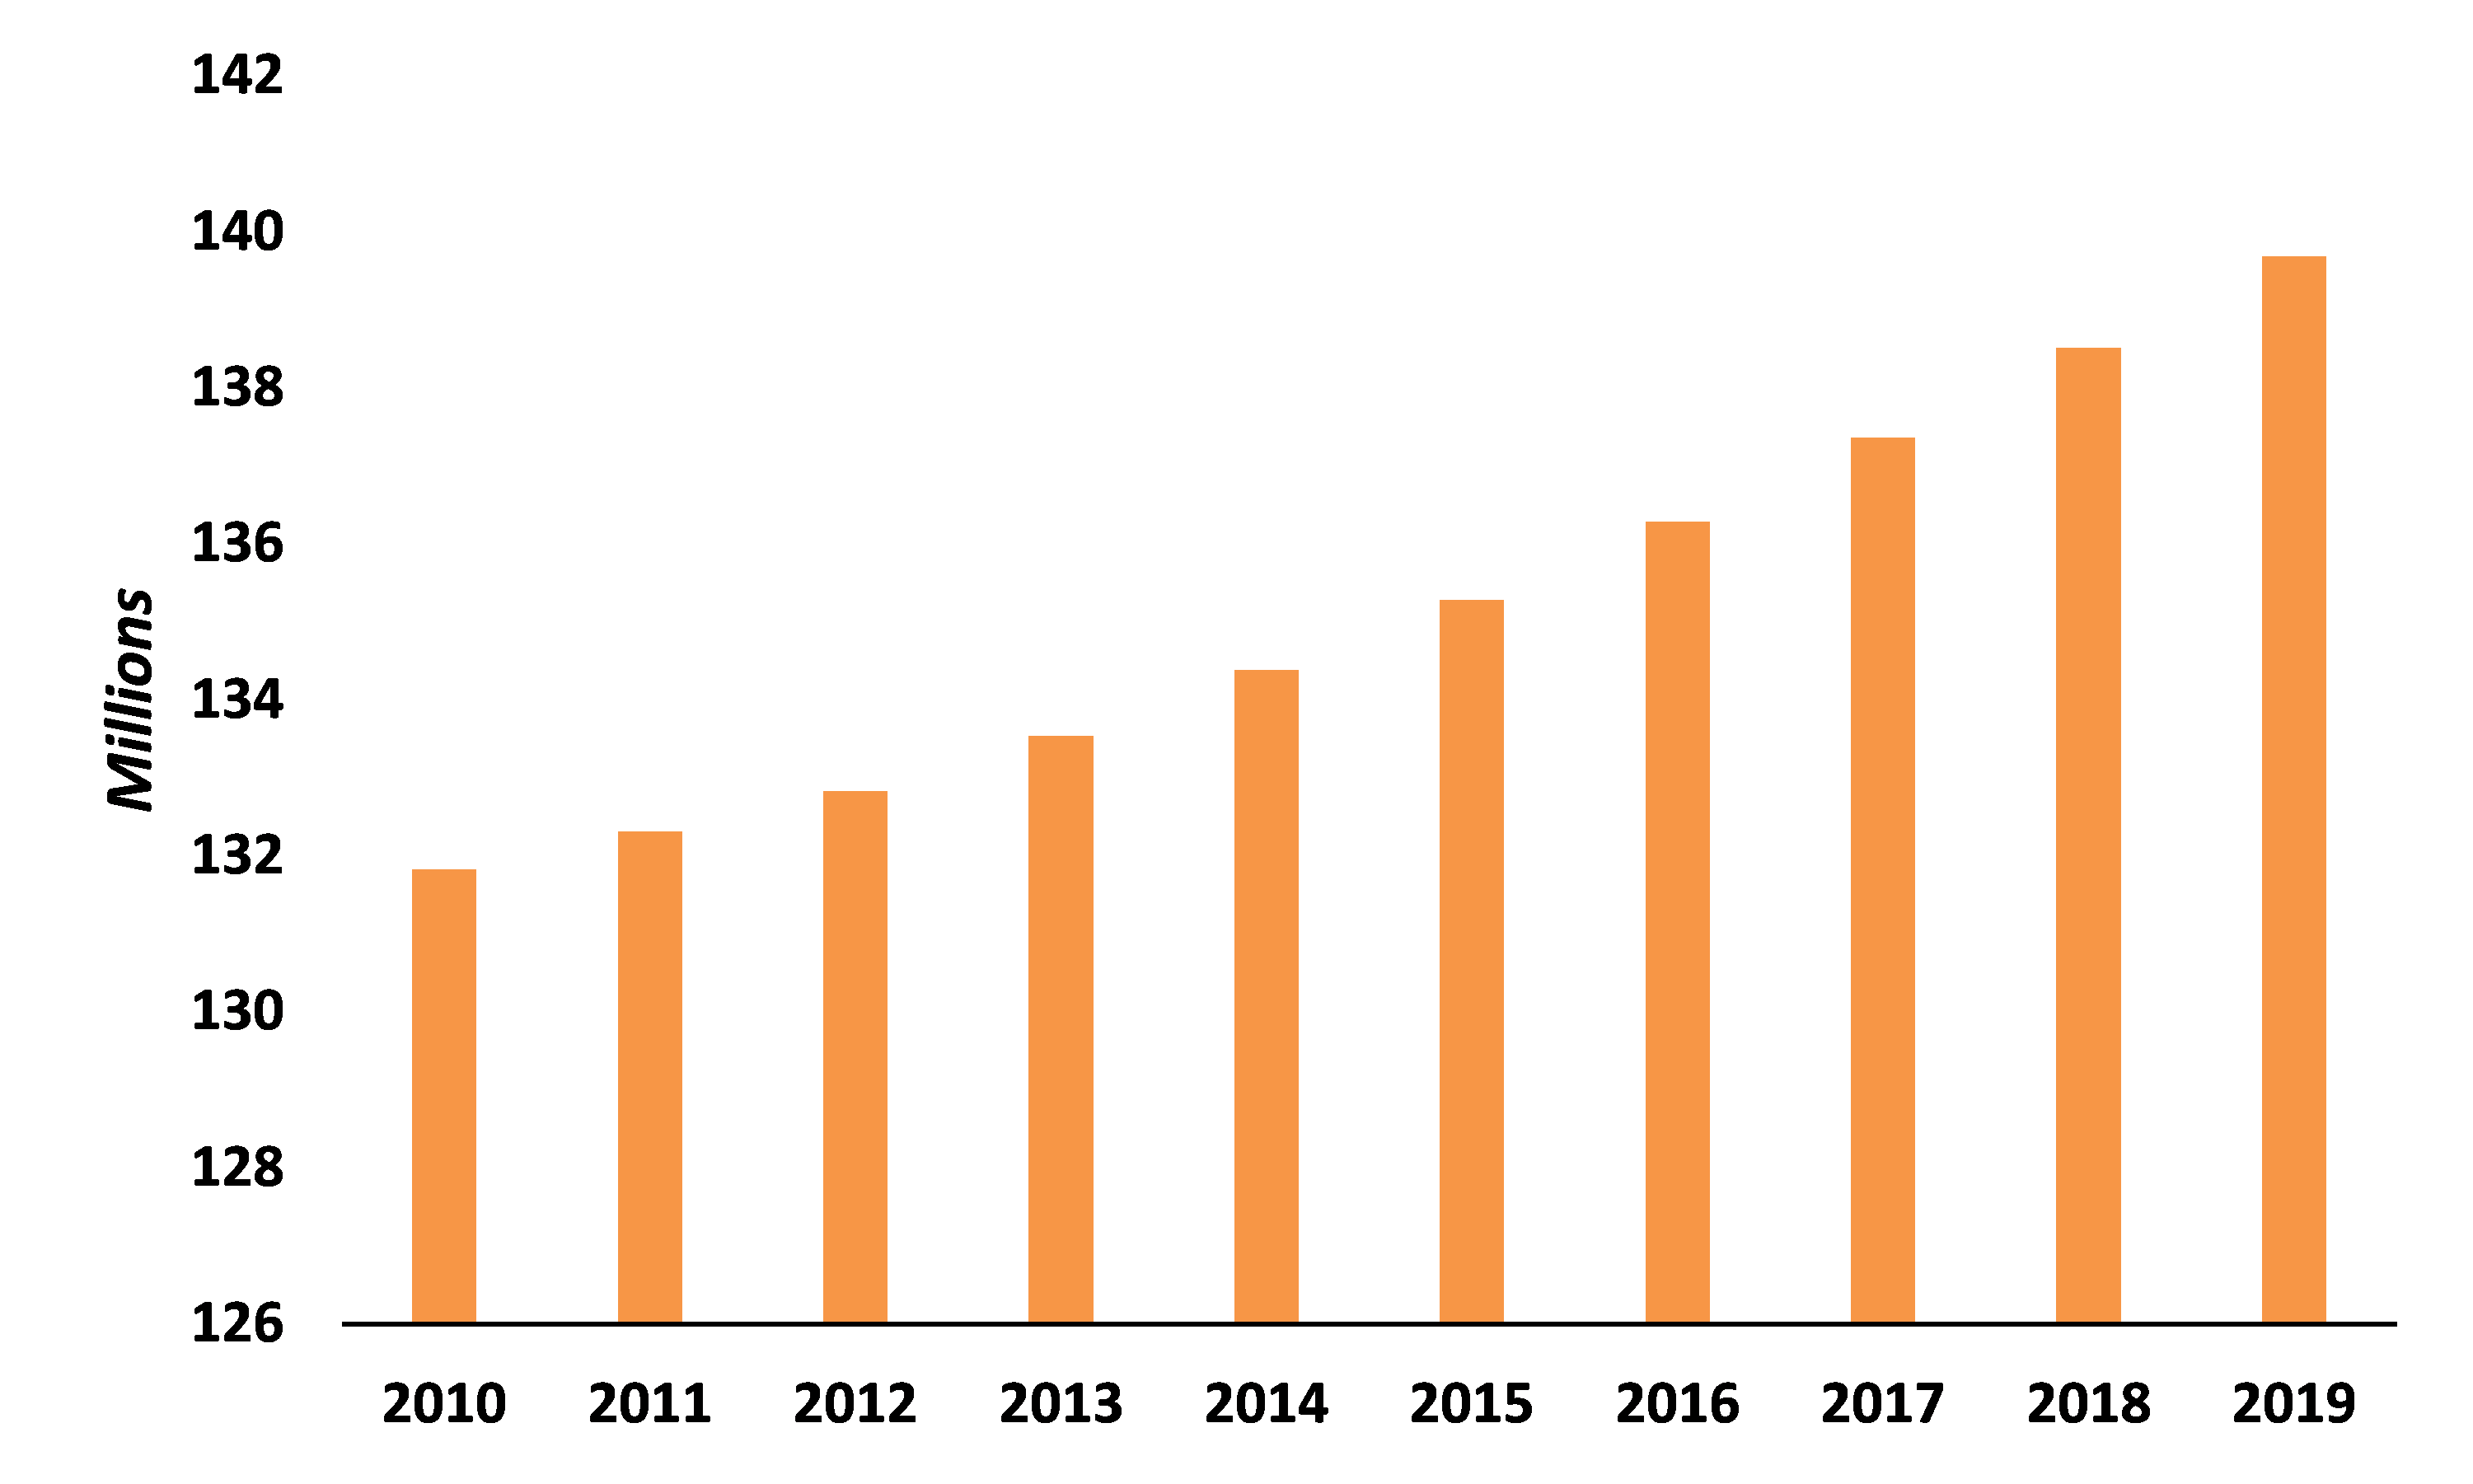 Annual-Estimates-of-Housing-Units-for-the-US-2010-2019